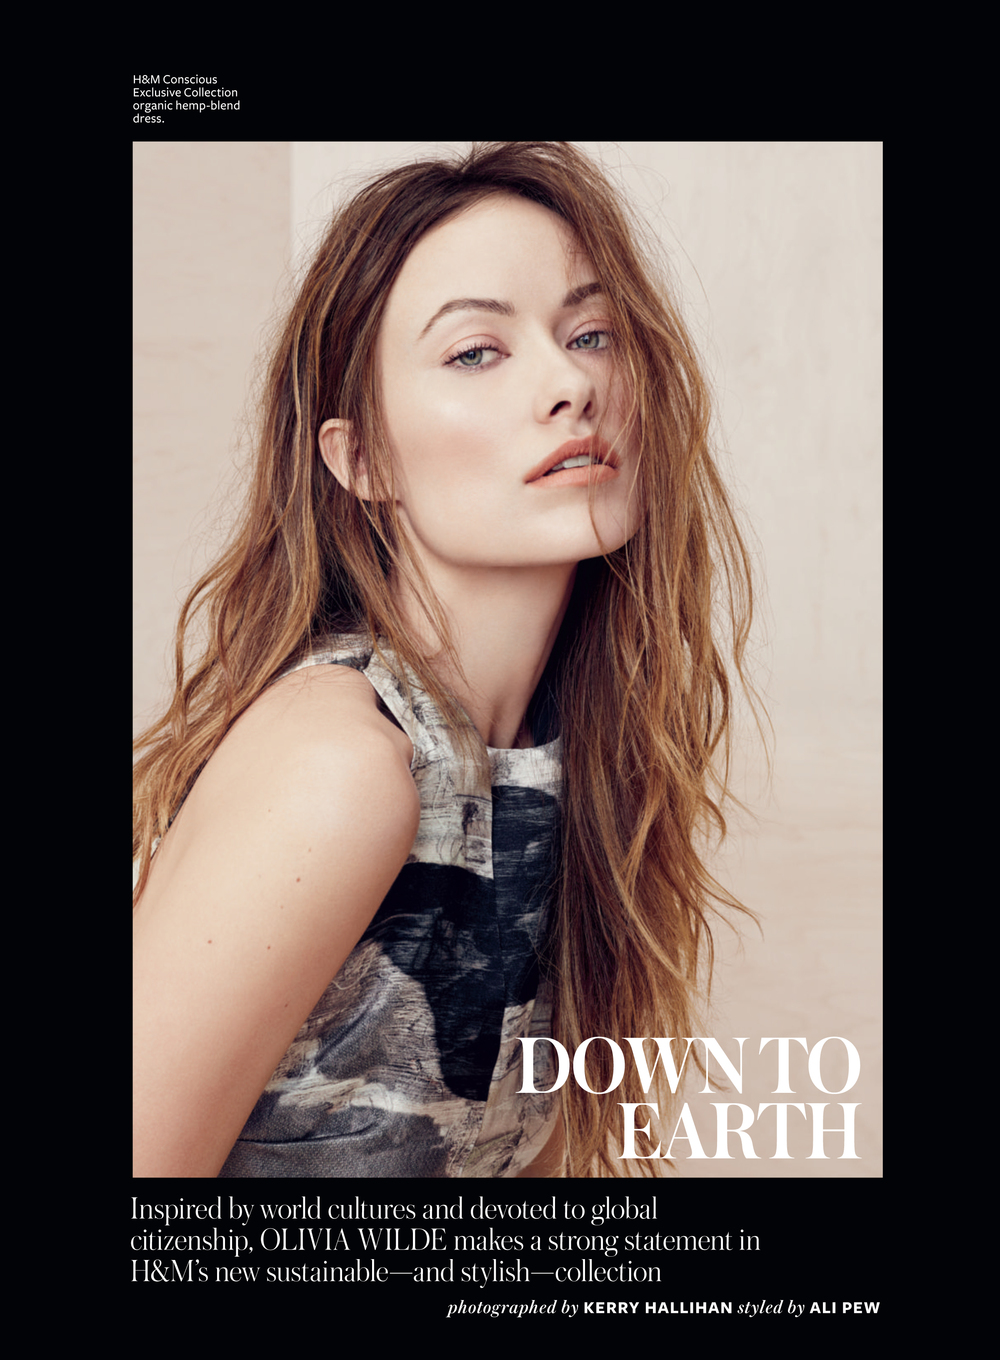 SC_EDITORIAL_INSTYLE_APRIL2015_DOWNTOEARTH_3.jpg